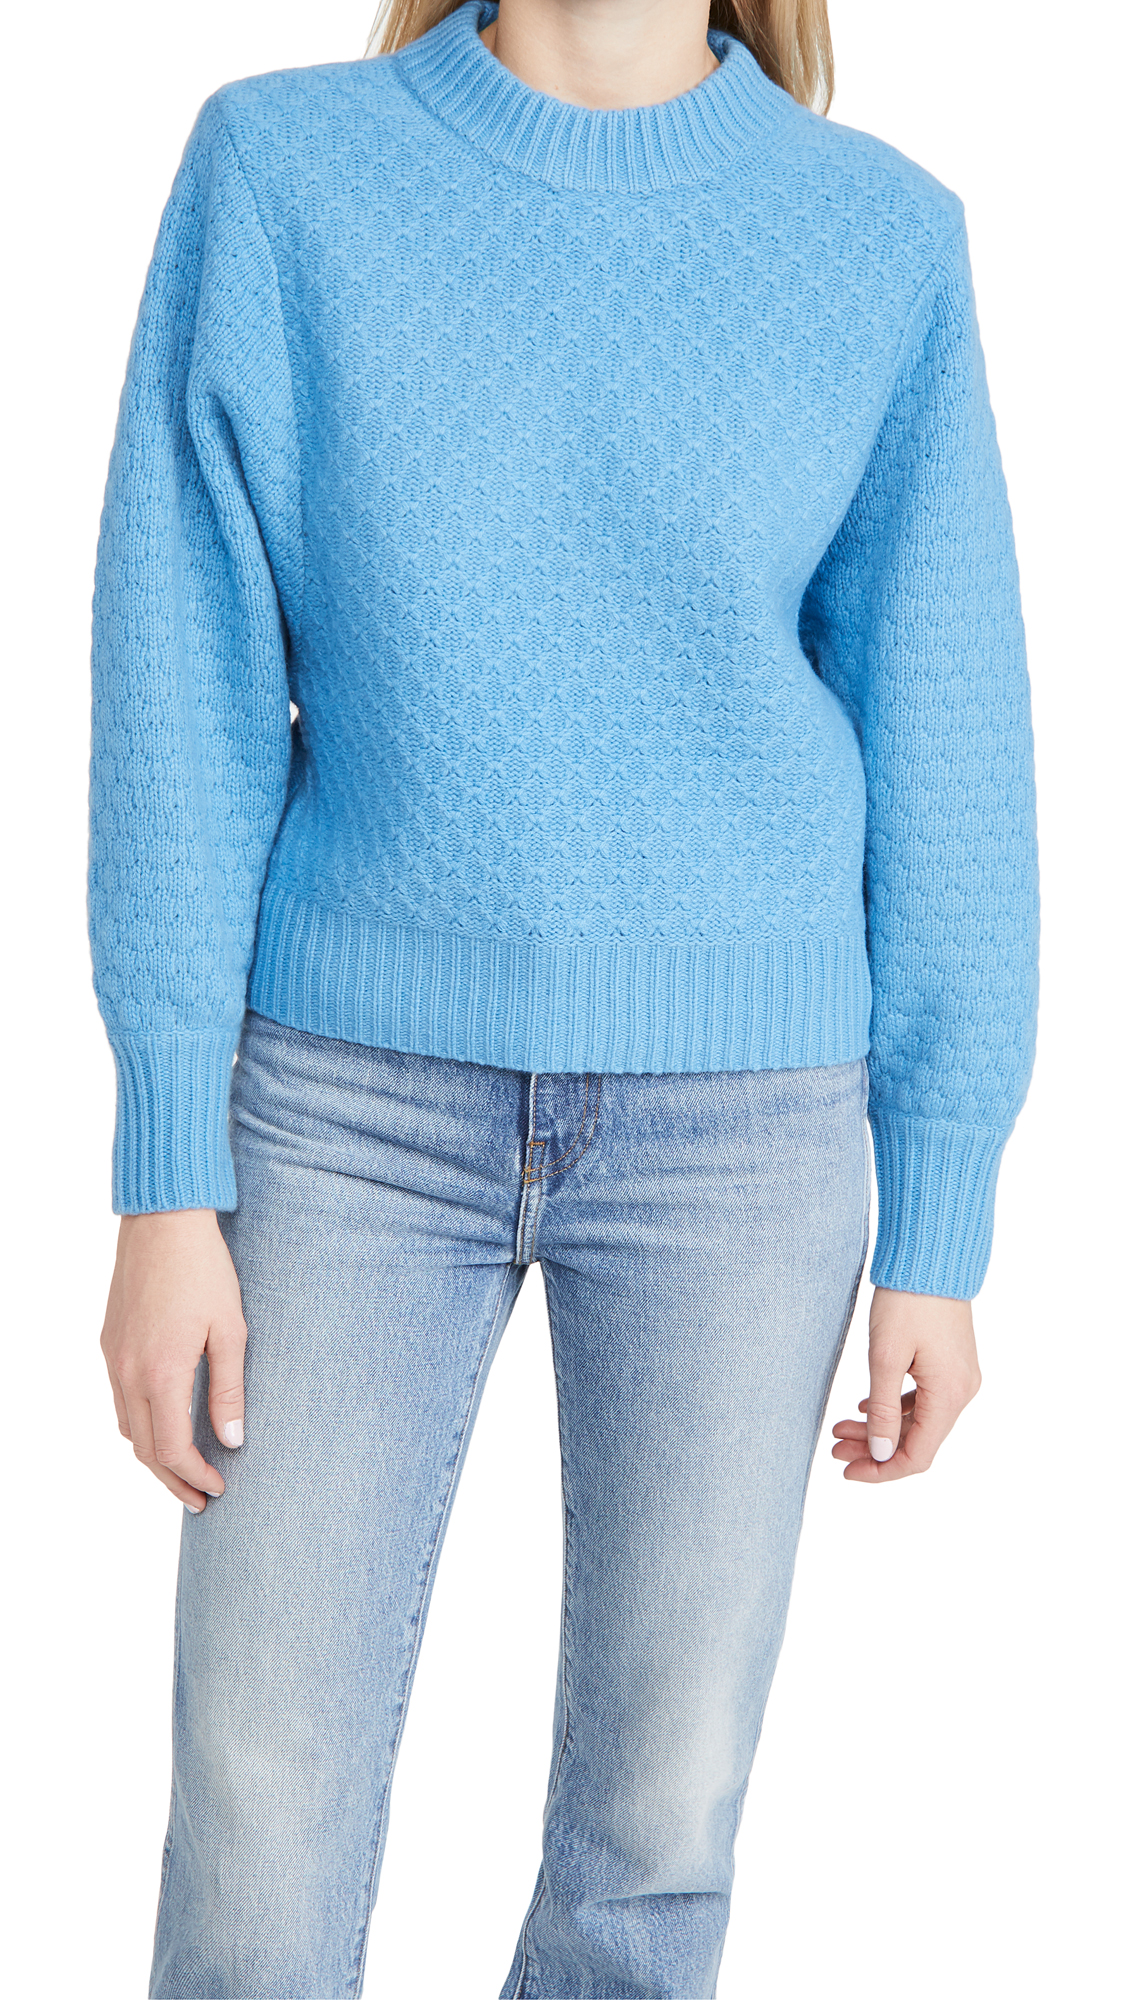 Current/Elliott The Juniper Sweater